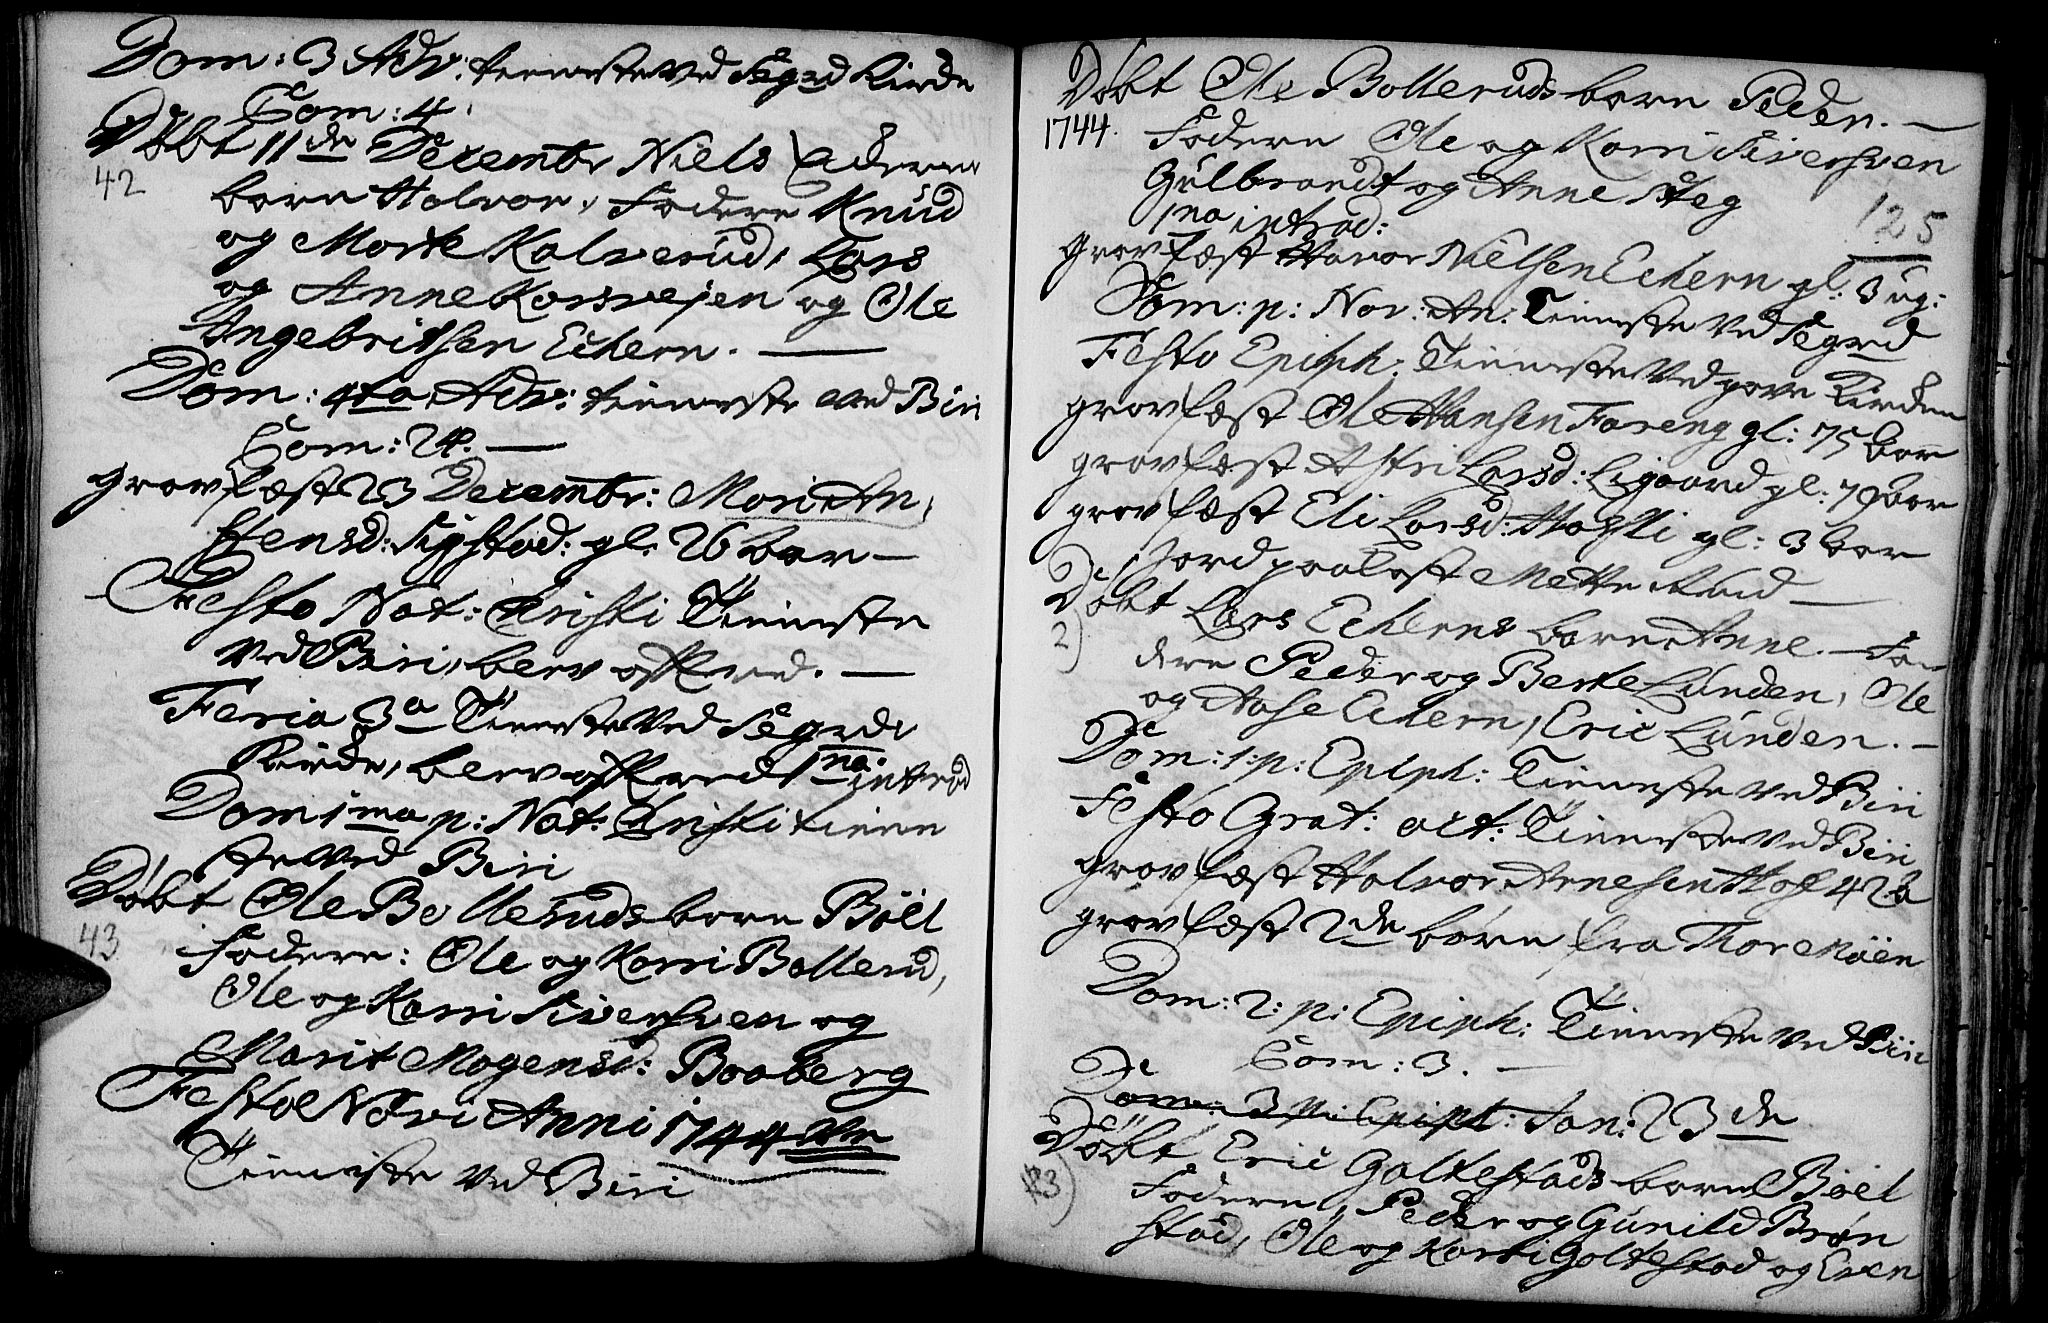 SAH, Biri prestekontor, Parish register (official) no. 1, 1730-1754, p. 125